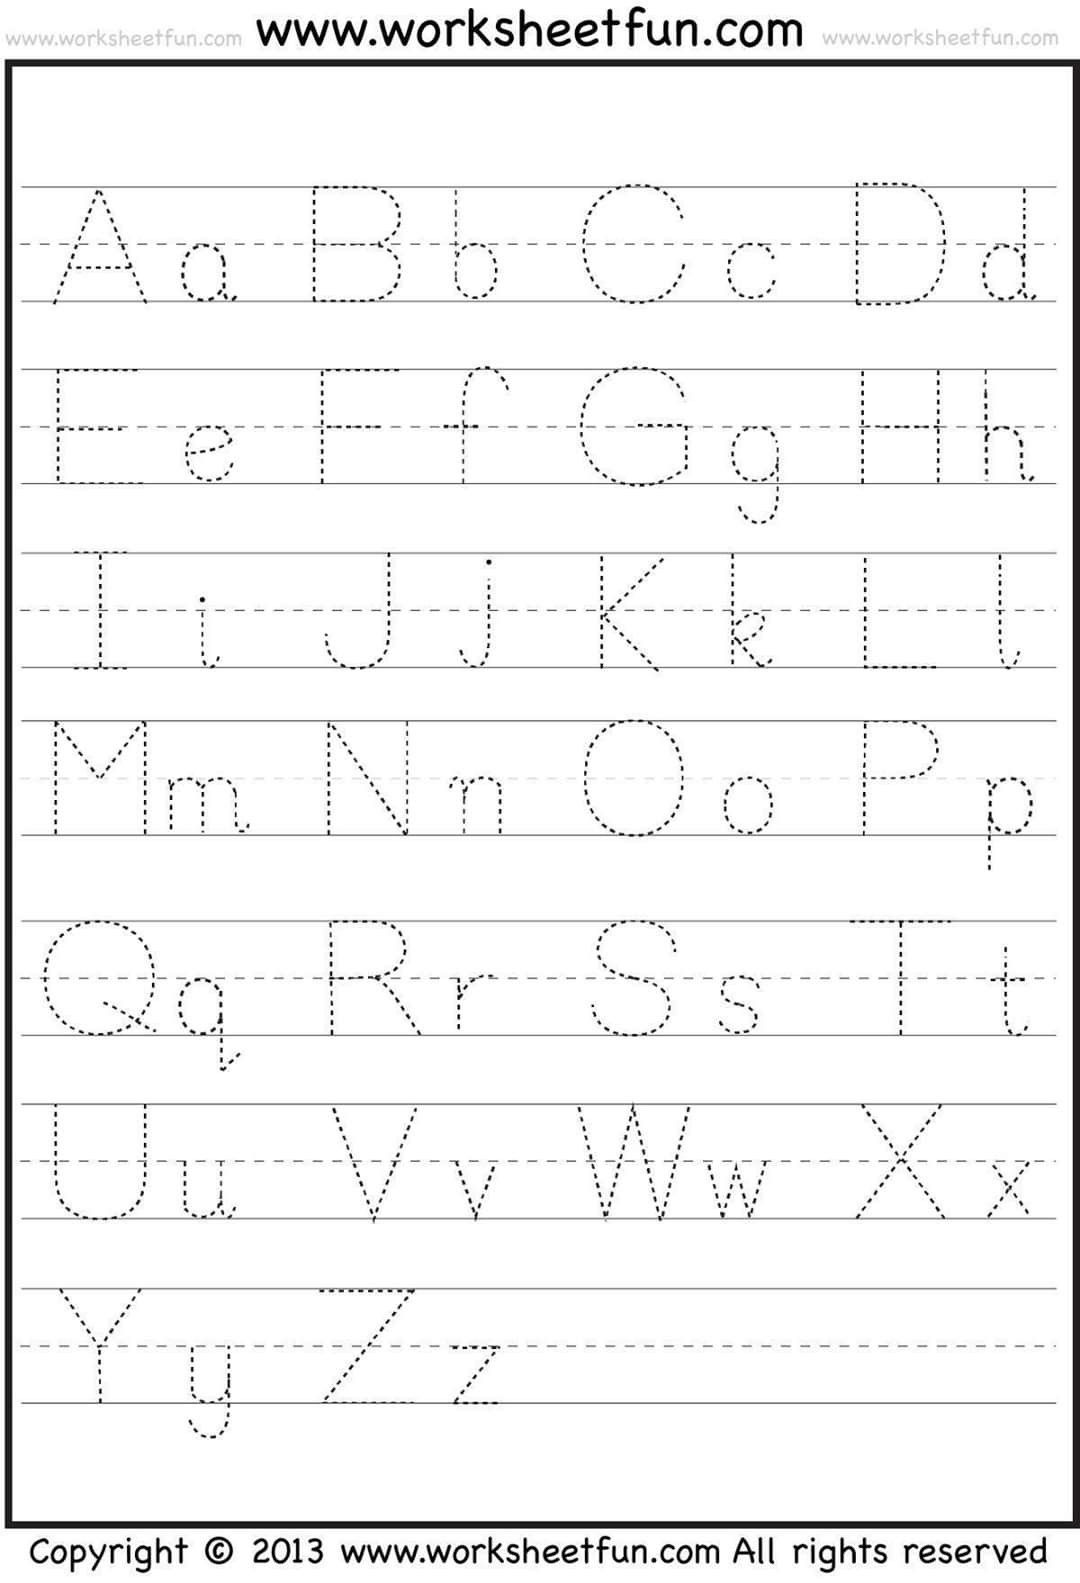 Pin By Portuguese Princess On Worksheets In